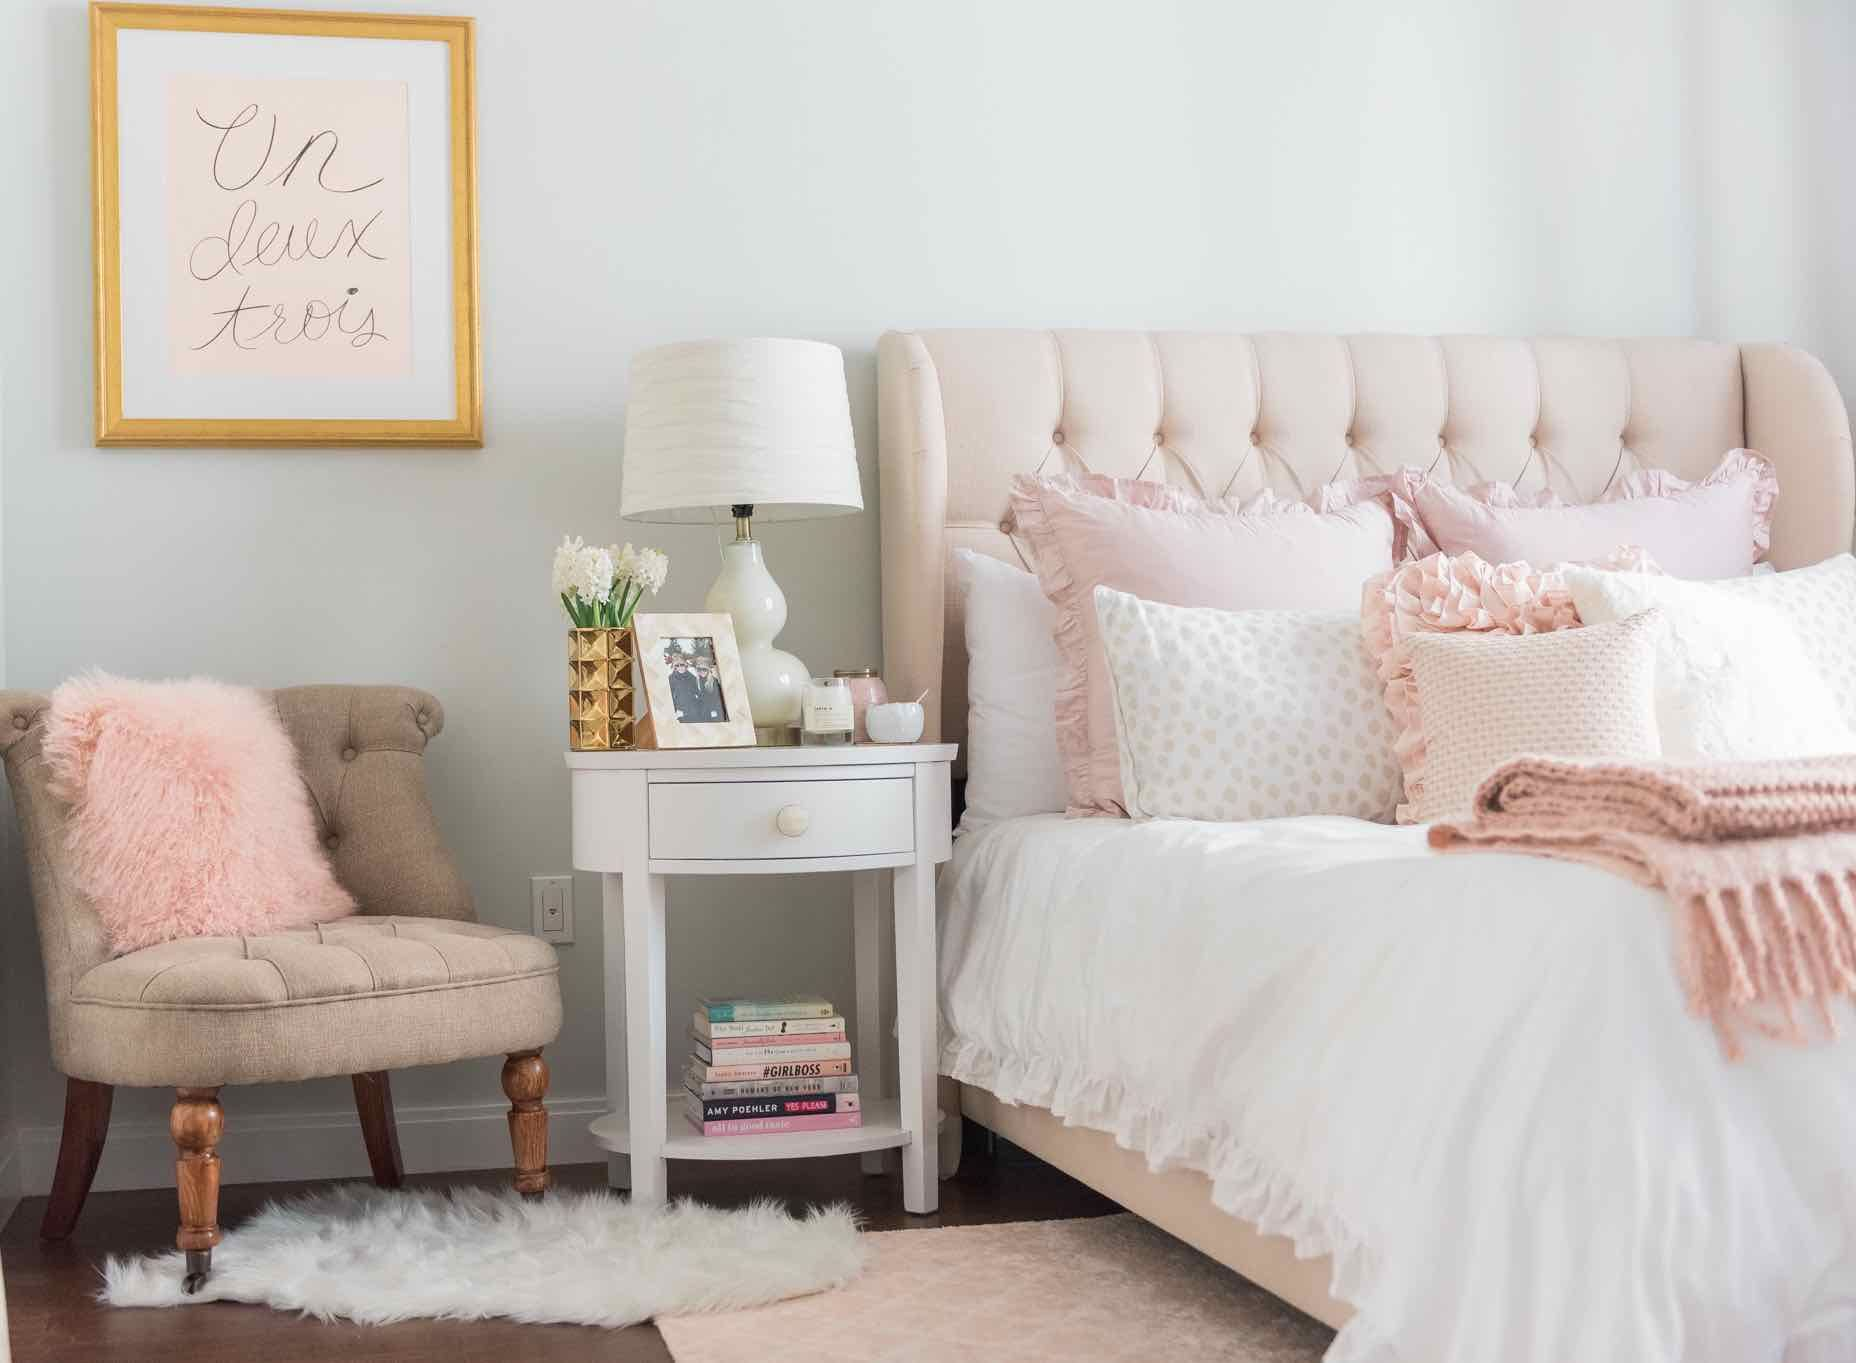 bedroom chair with skirt cool teen chairs you scream i we all for ice cream inspired decor this lush pink is flushed soft details including a faux fur rug and light headboard